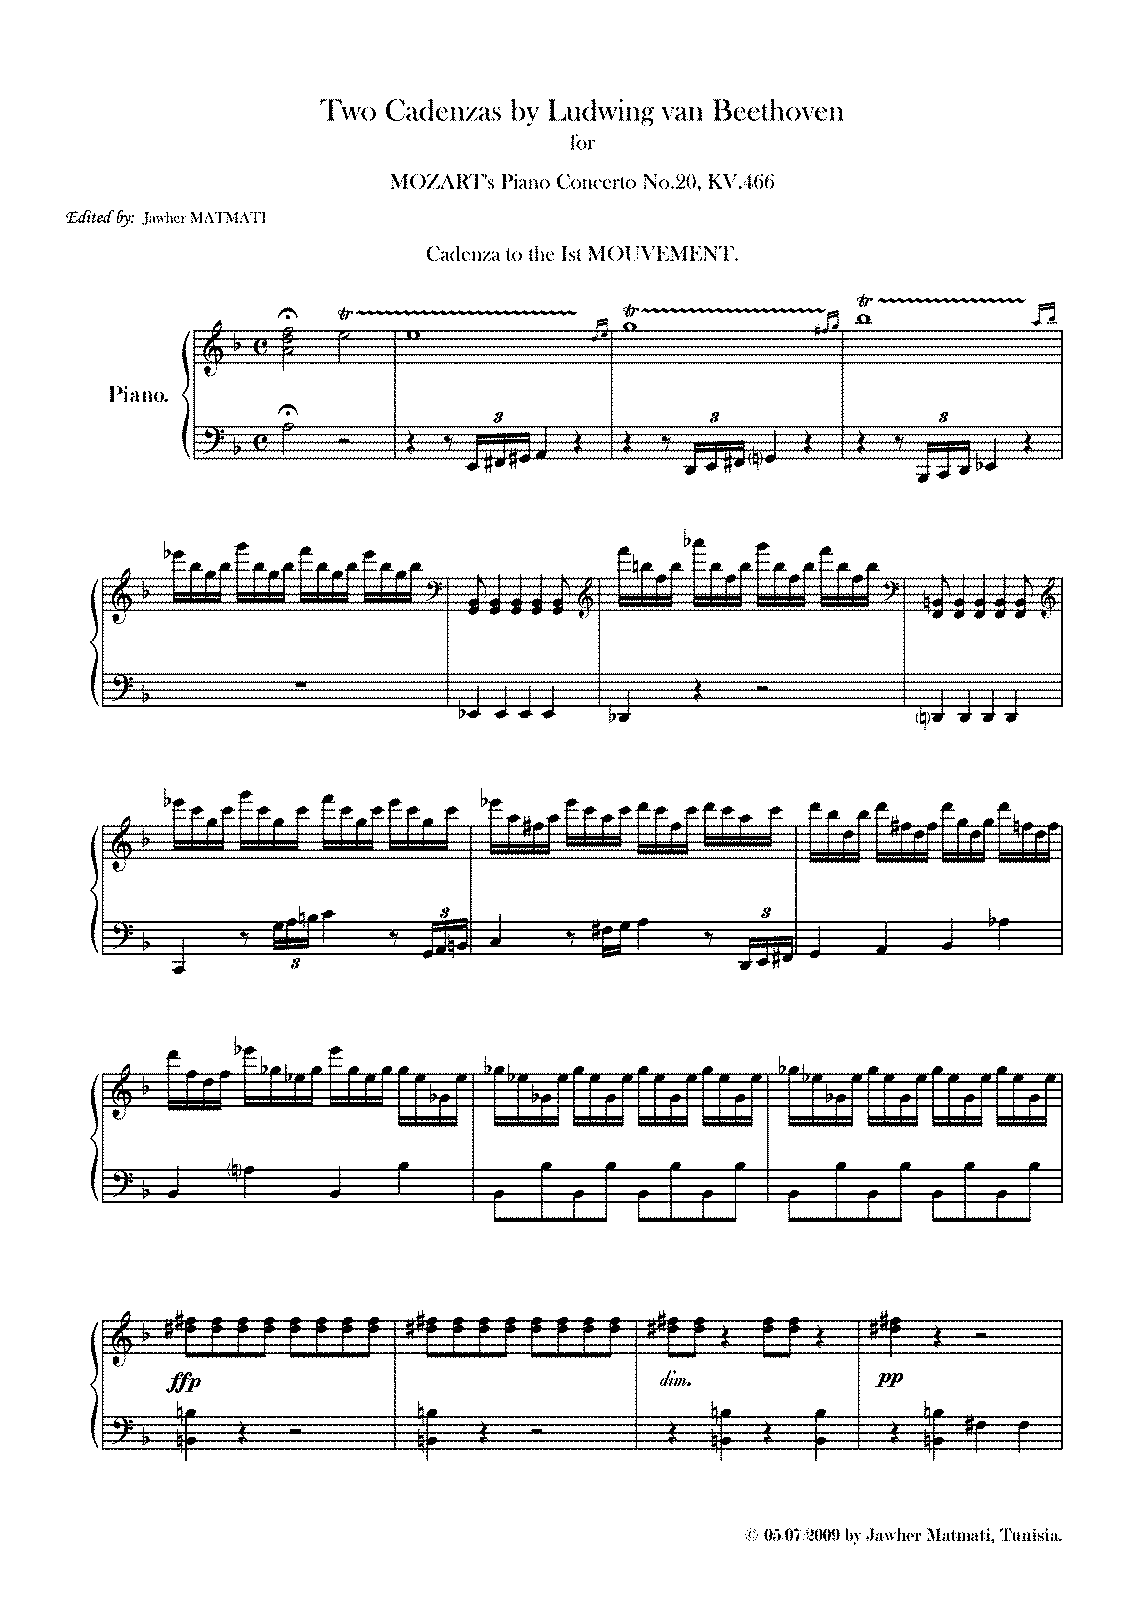 PMLP15389-2 Cadenzas by L.van Beethoven for Mozart's Piano Concerto No.20, KV.466.pdf